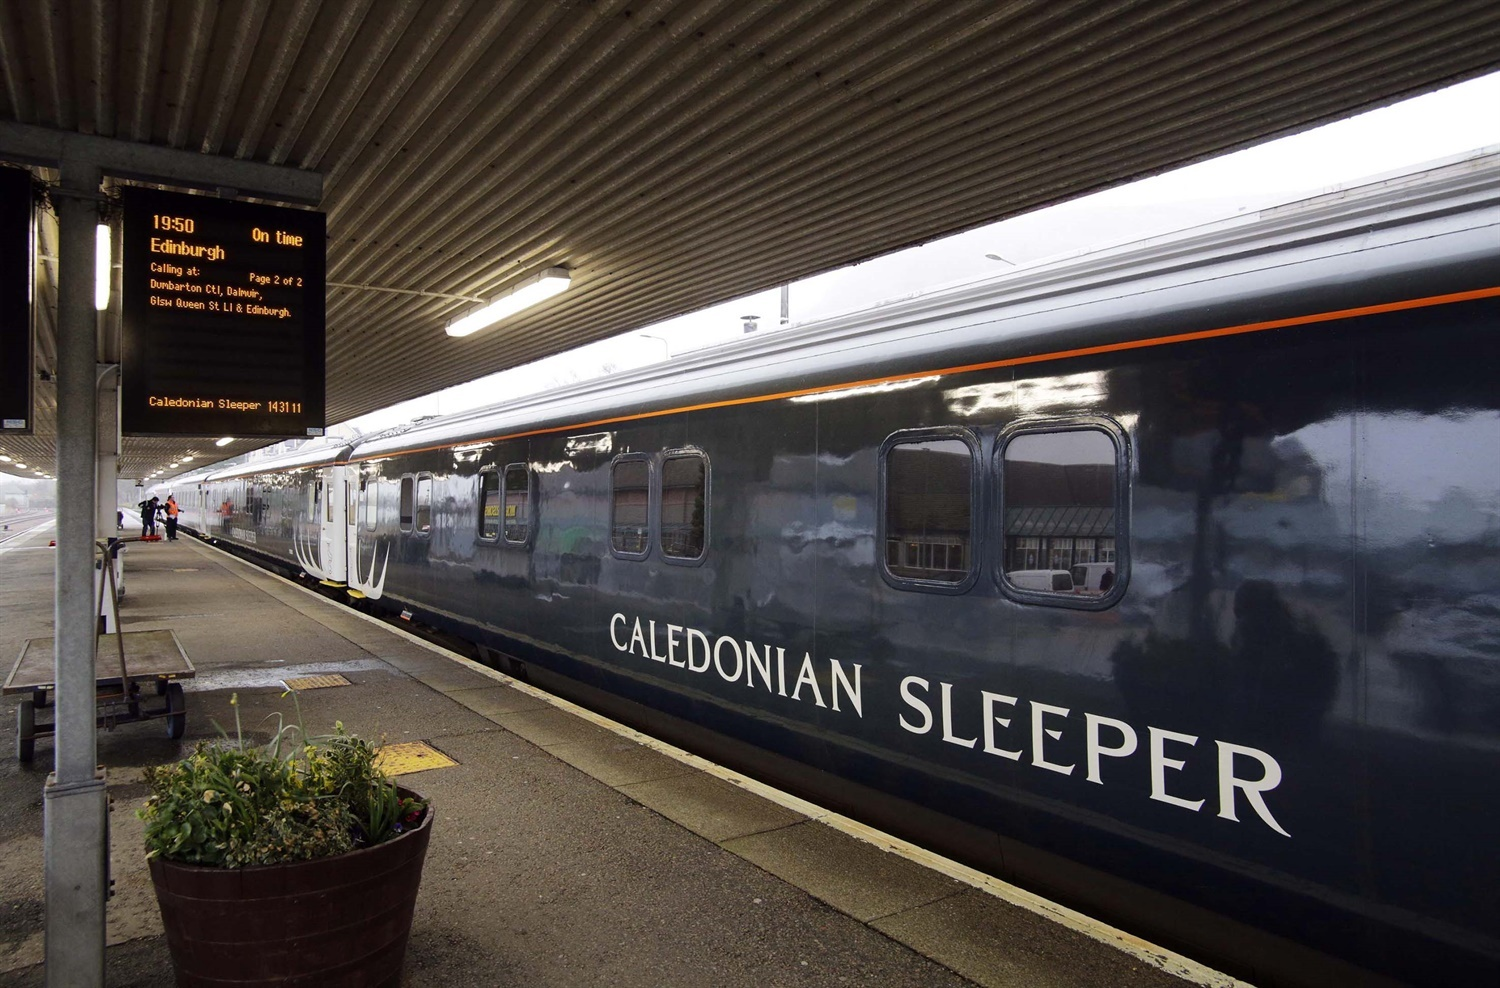 Caledonian Sleeper performance crashes in period 9